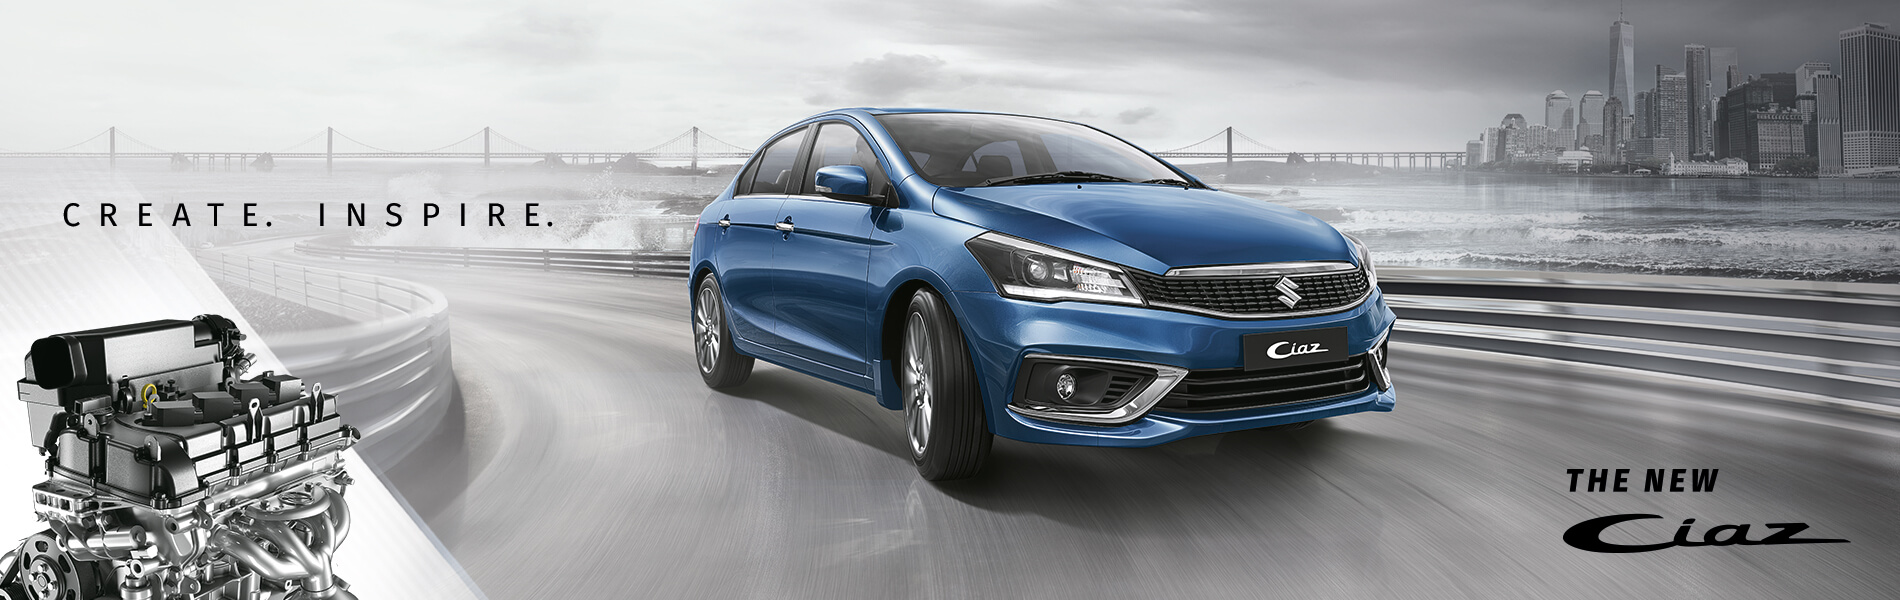 Blue Book Value >> New Ciaz: Car Price, Images, Specifications & Features | NEXA